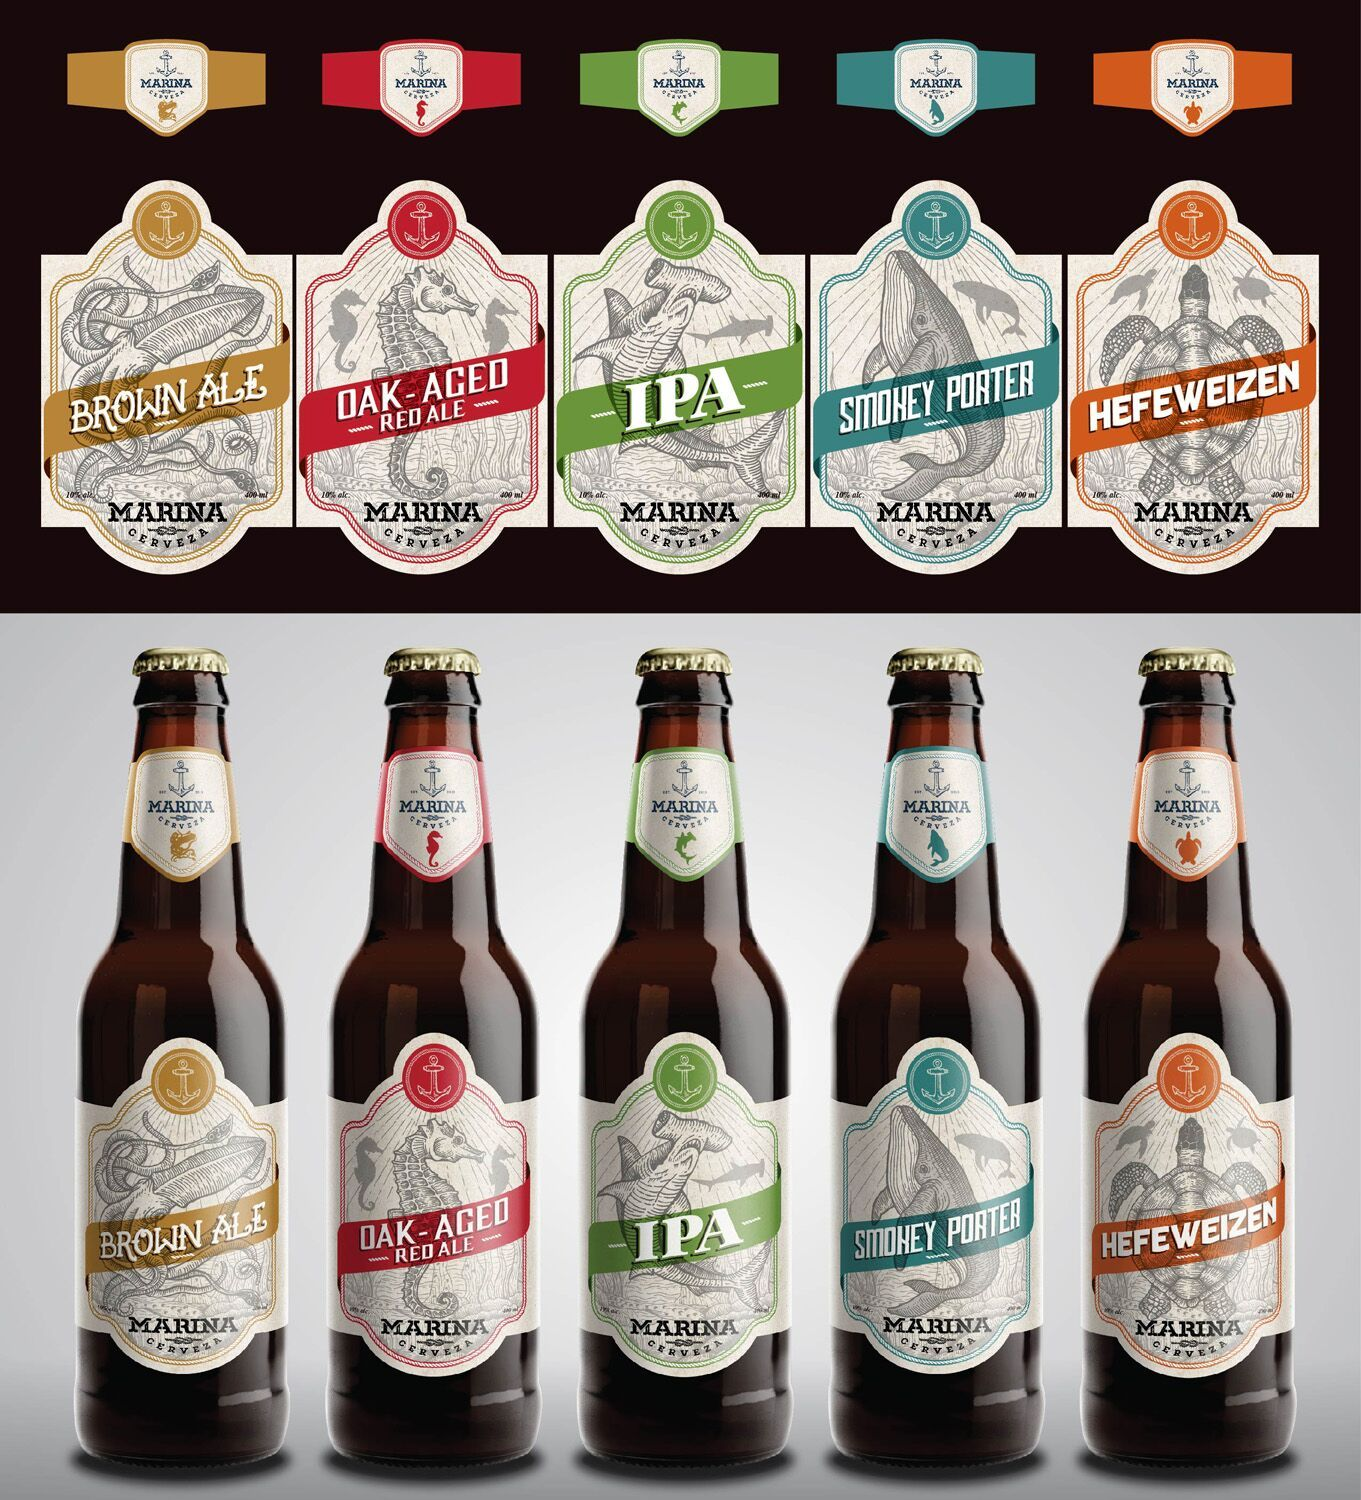 10 Inspirational Graphic Design Trends For 2018 99designs Beer Bottle Design Beer Label Design Beer Design